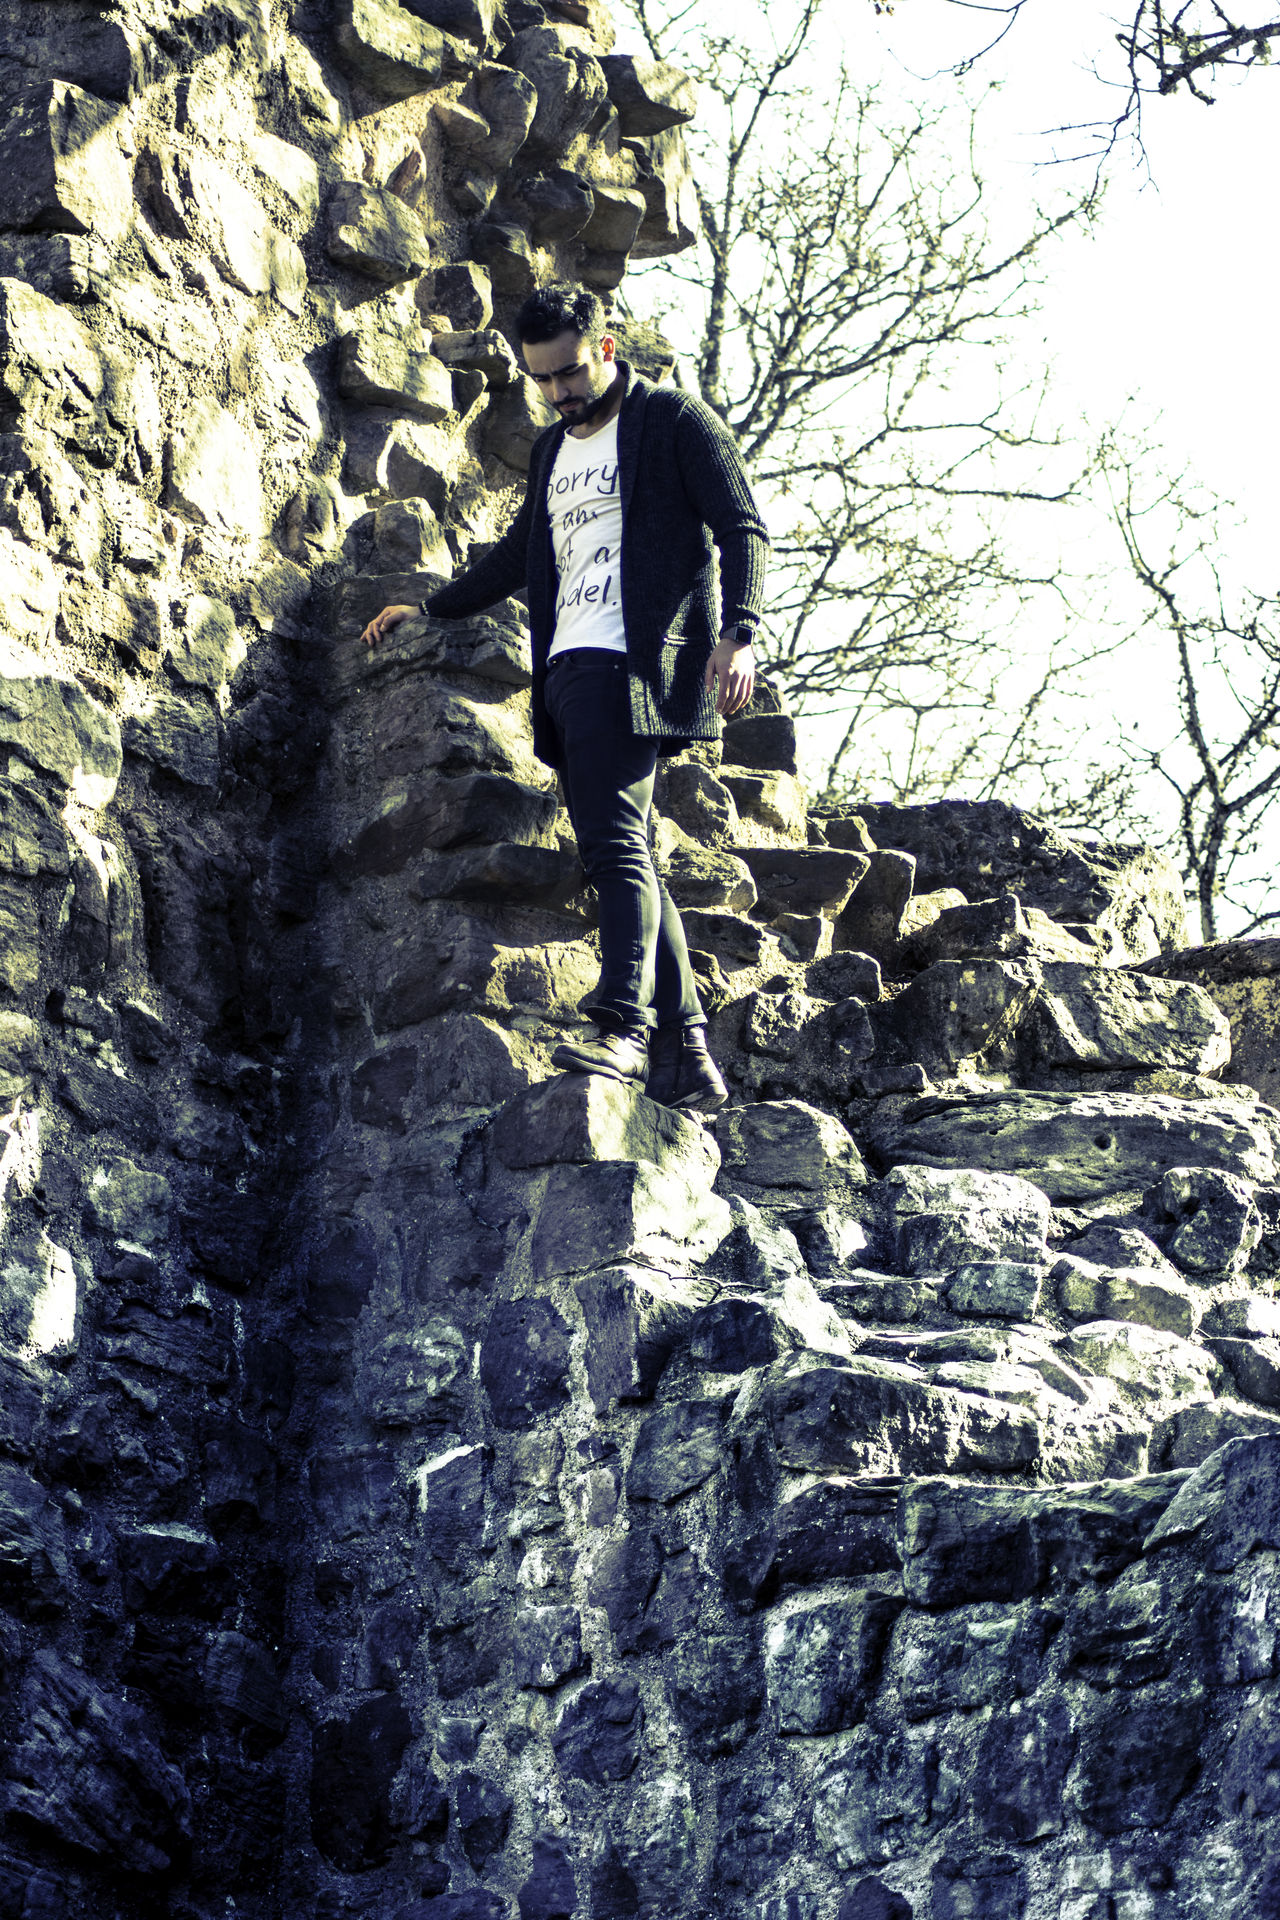 Cold Day EyeEm Best Shots Full Length Leisure Activity Lifestyles Low Angle View Men Model Nature One Person Outdoors Real People Rear View Rocks Shooting Standing Tree Wall